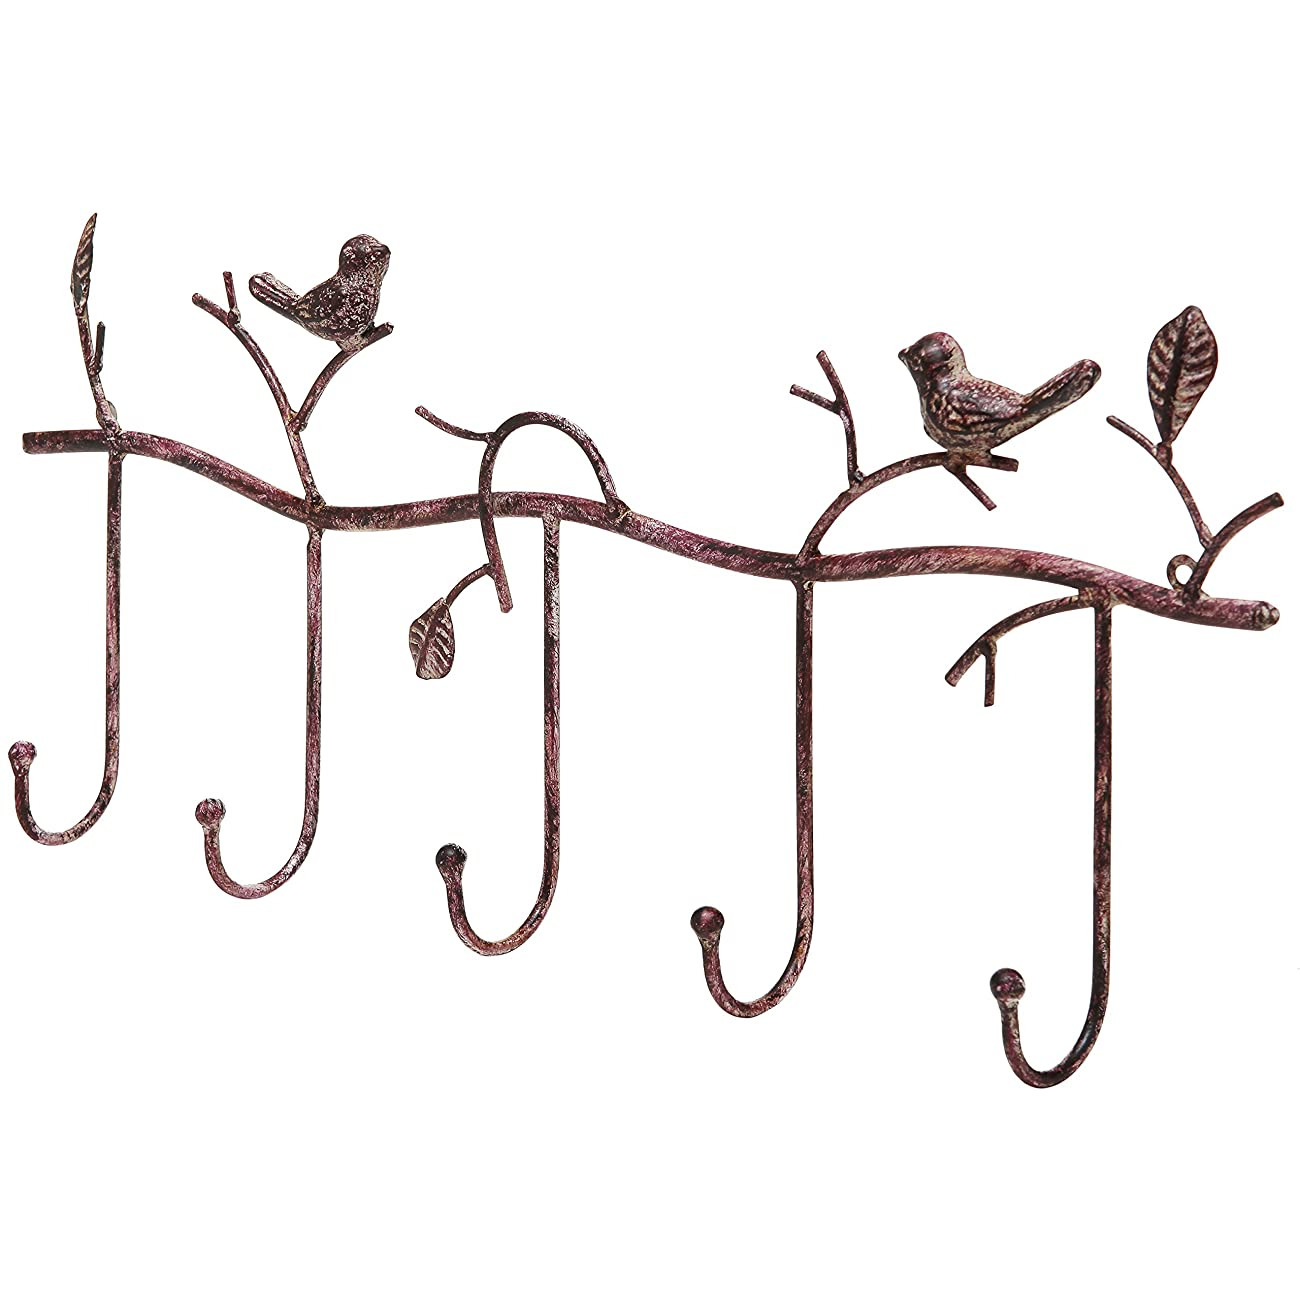 Decorative Rustic Tree Branch Amp Birds Wall Mounted Metal 5